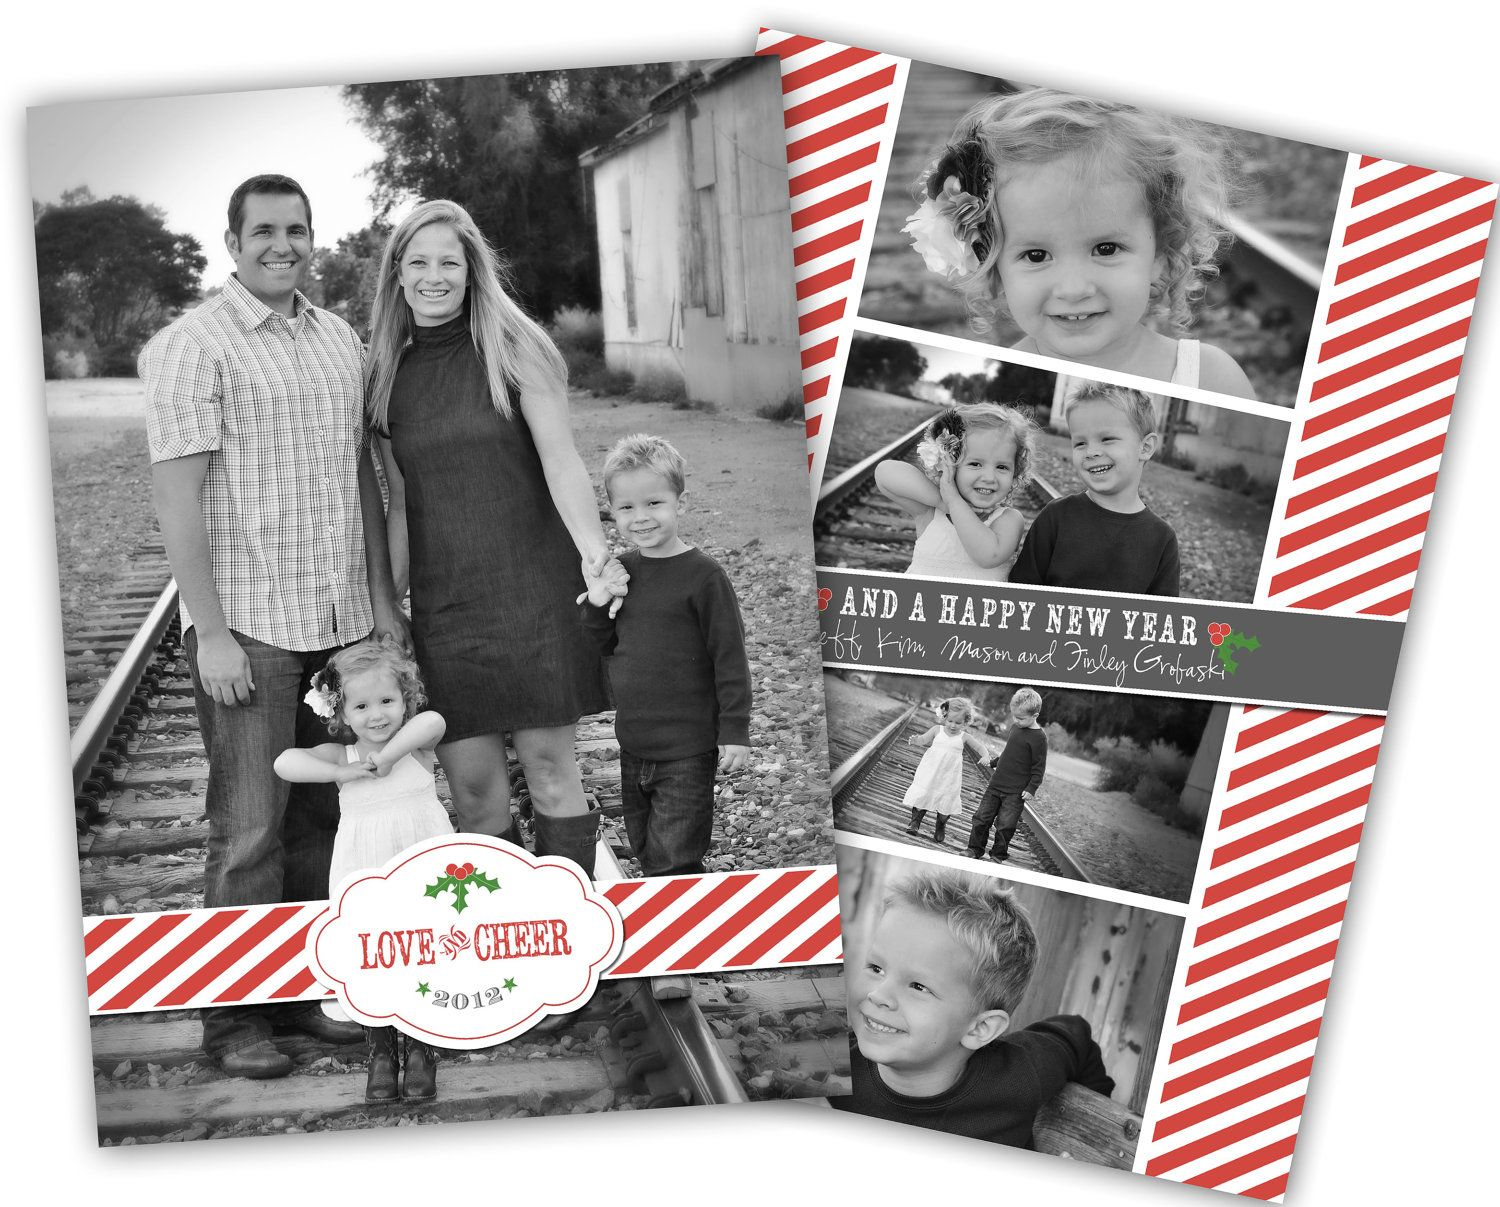 Love and Cheer One Picture Card Design (4x6 or 5x7) - Free Coordinating Backside Design with Card Printing Option through JamesPaigeDesign. $15.00, via Etsy.